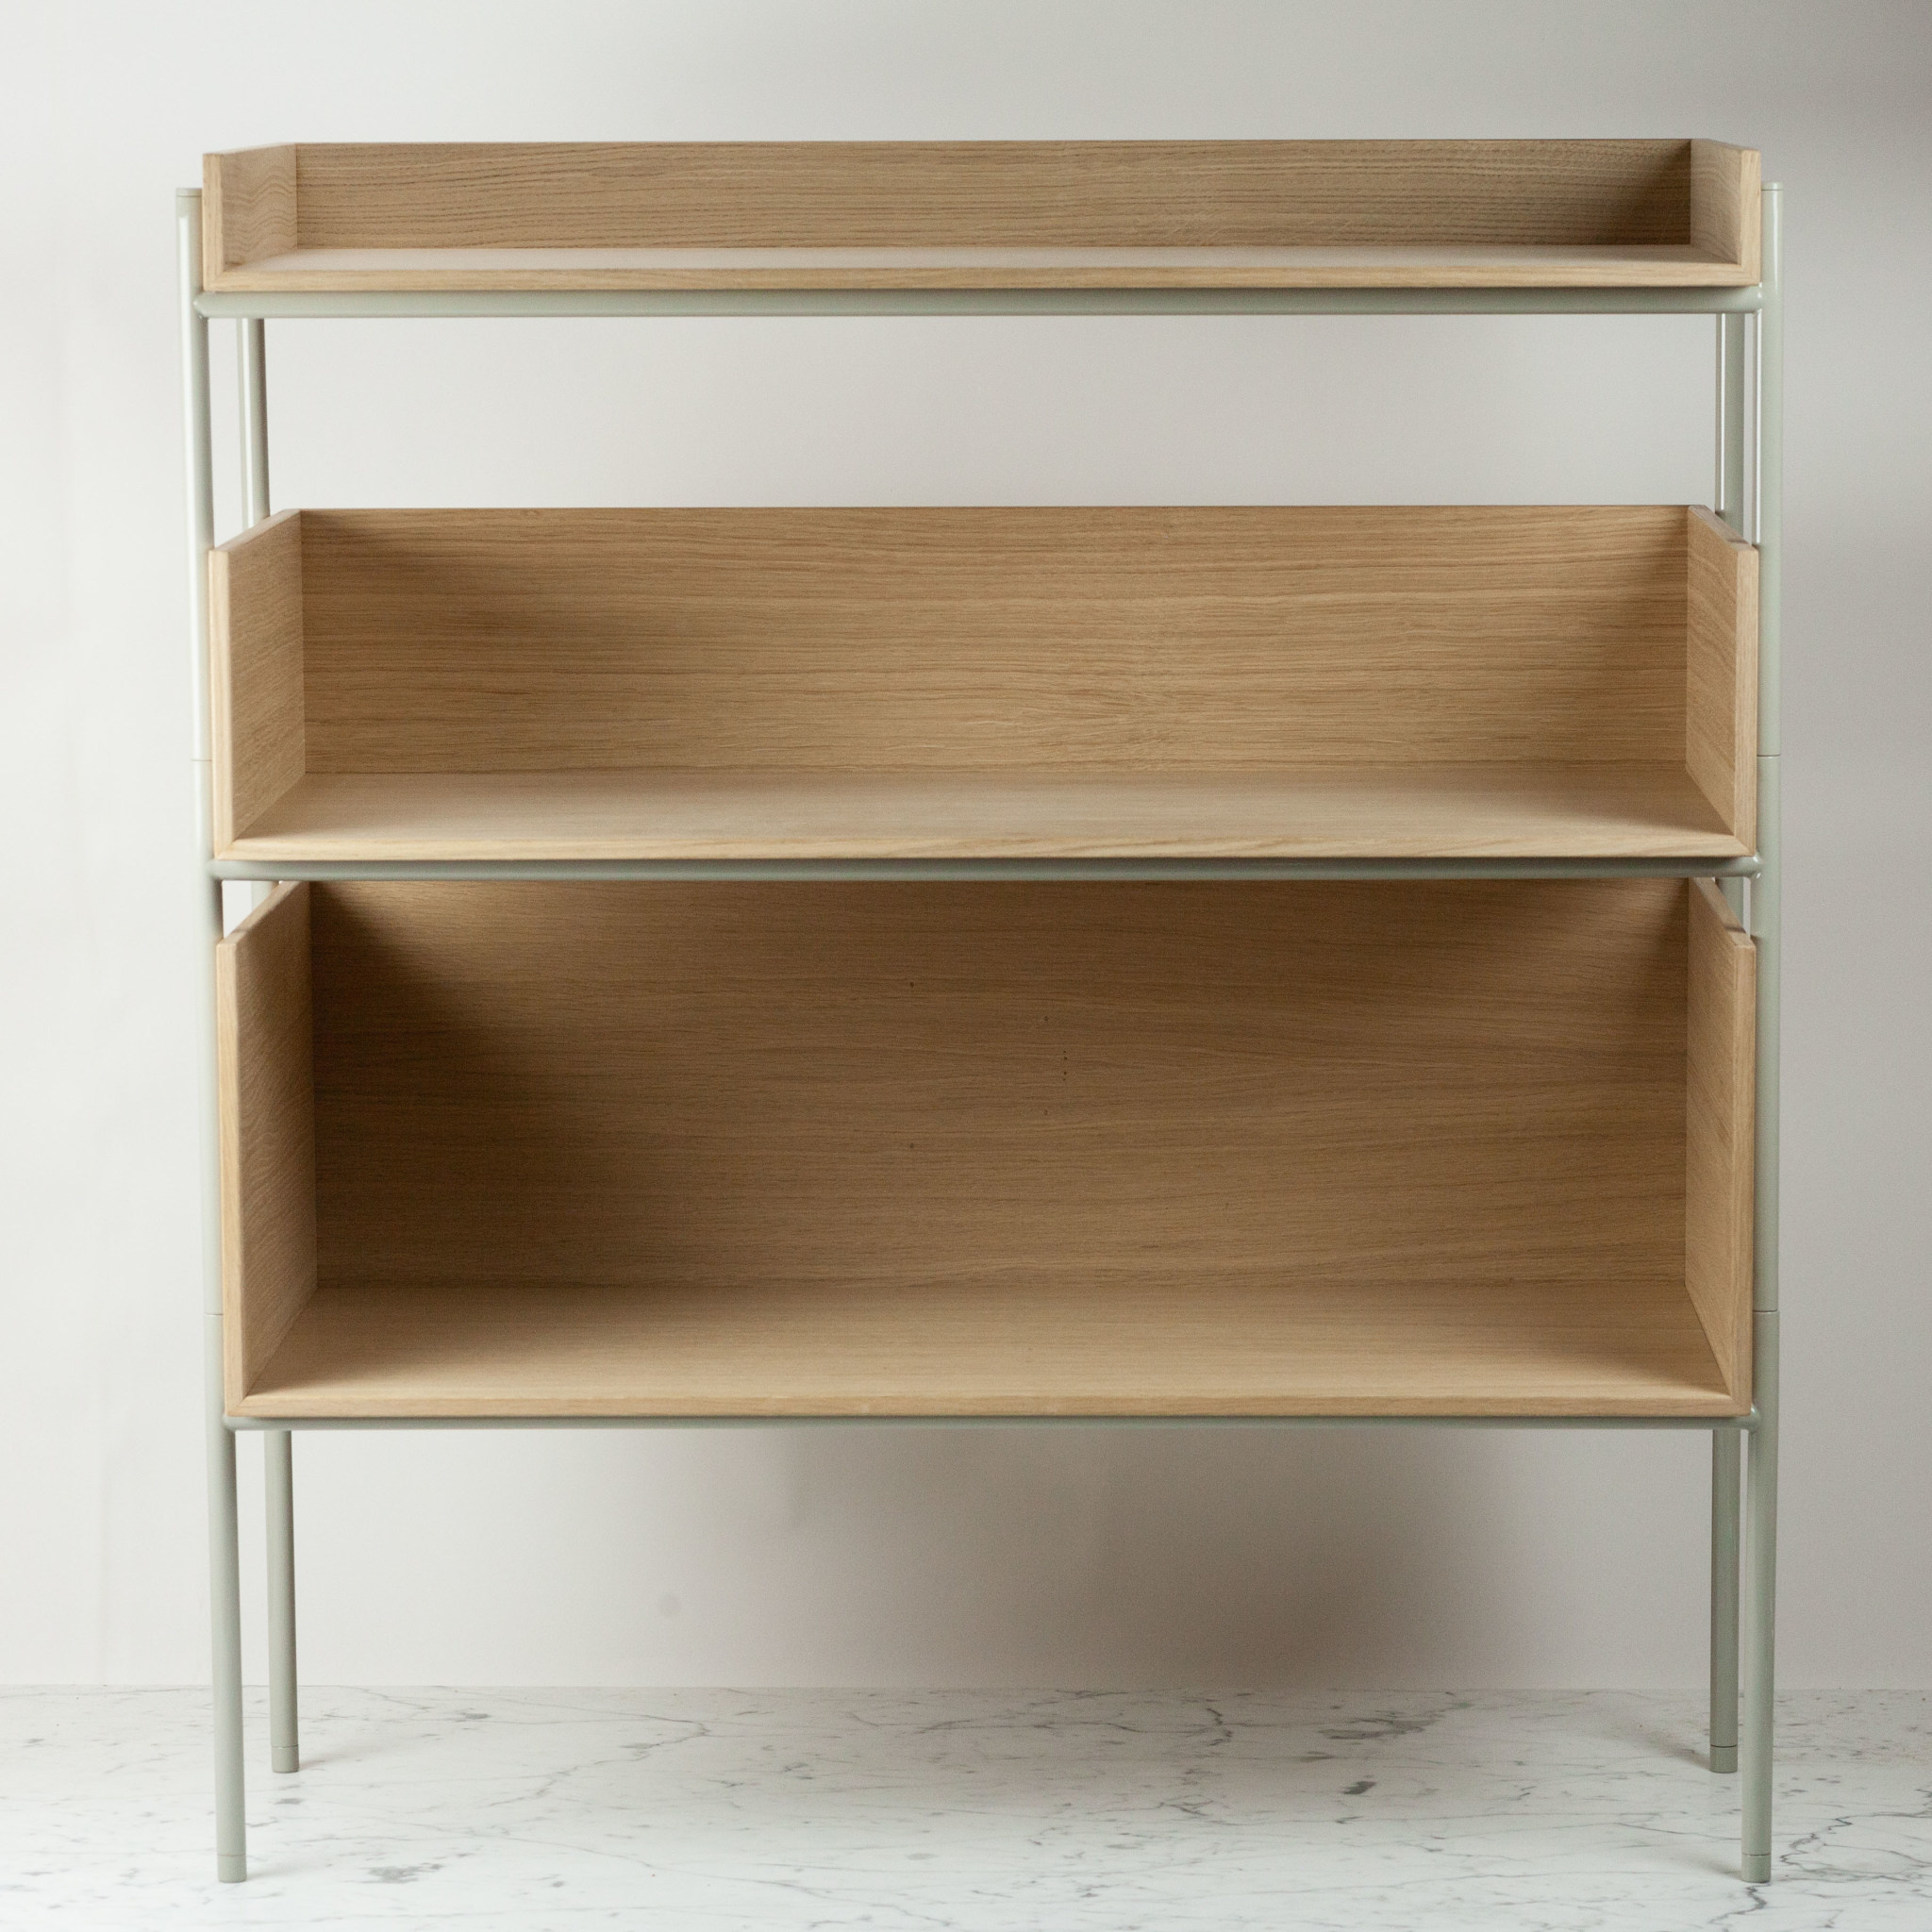 Skagerak Vivlio Stacking Shelf - Medium - Ash